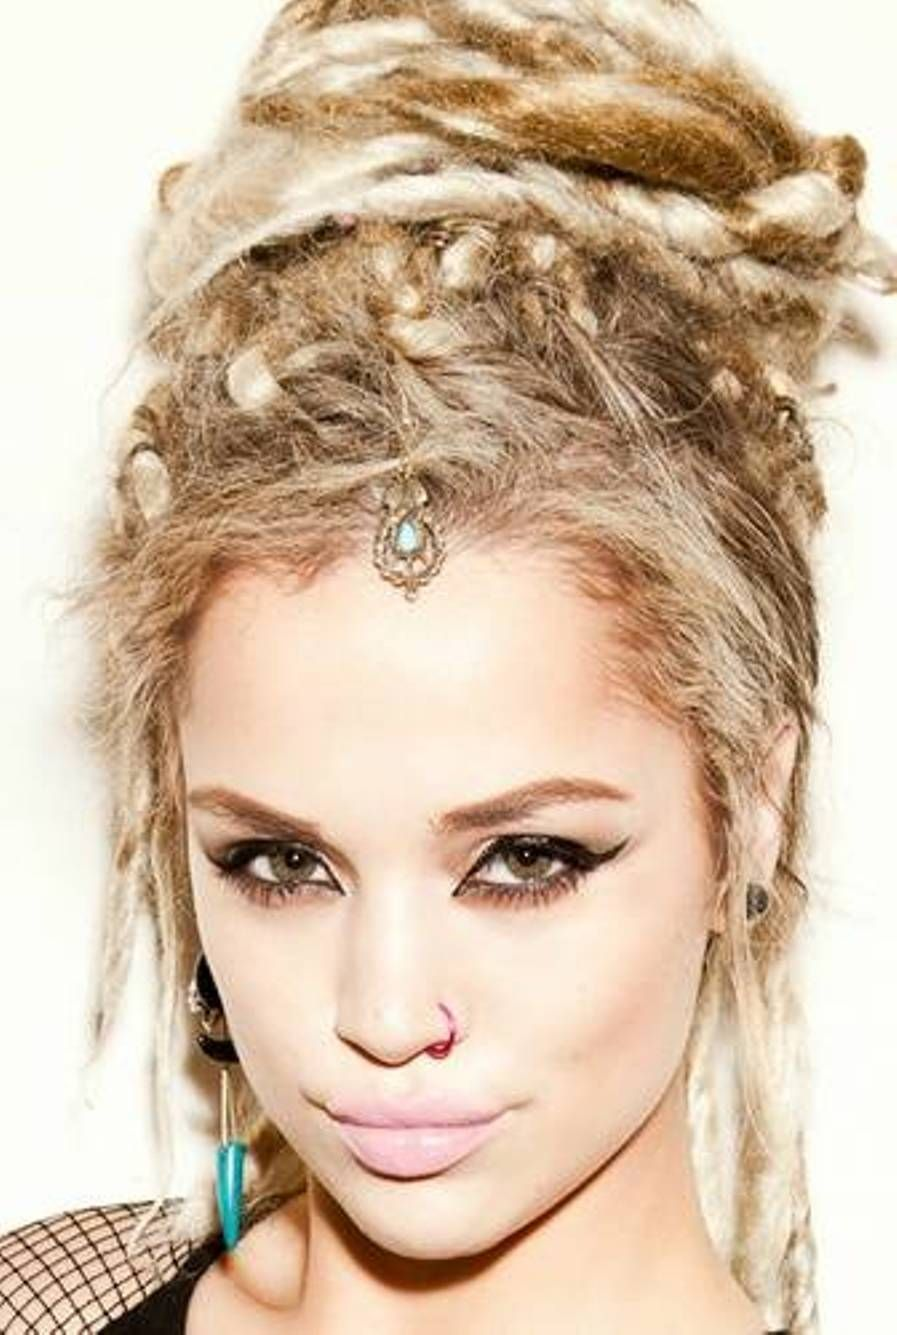 different styles for dreadlocks | different hairstyles for women